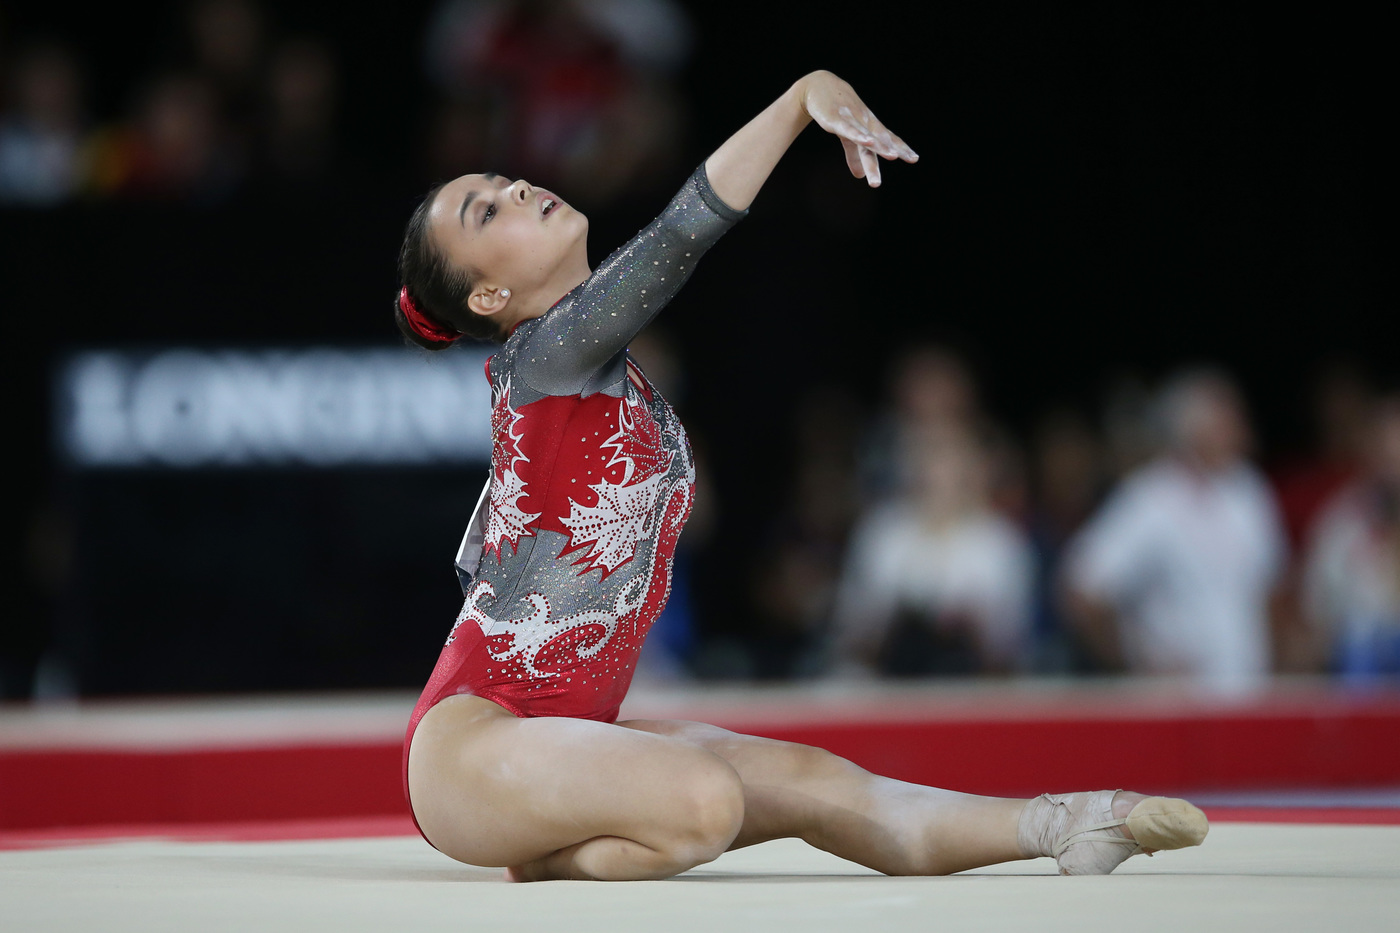 Longines Gymnastics Event: Canada's Brooklyn Moors and Japan's Kenzo Shirai presented with the Longines Prize for Elegance at the 47th Artistic Gymnastics World Championships in Montréal  4